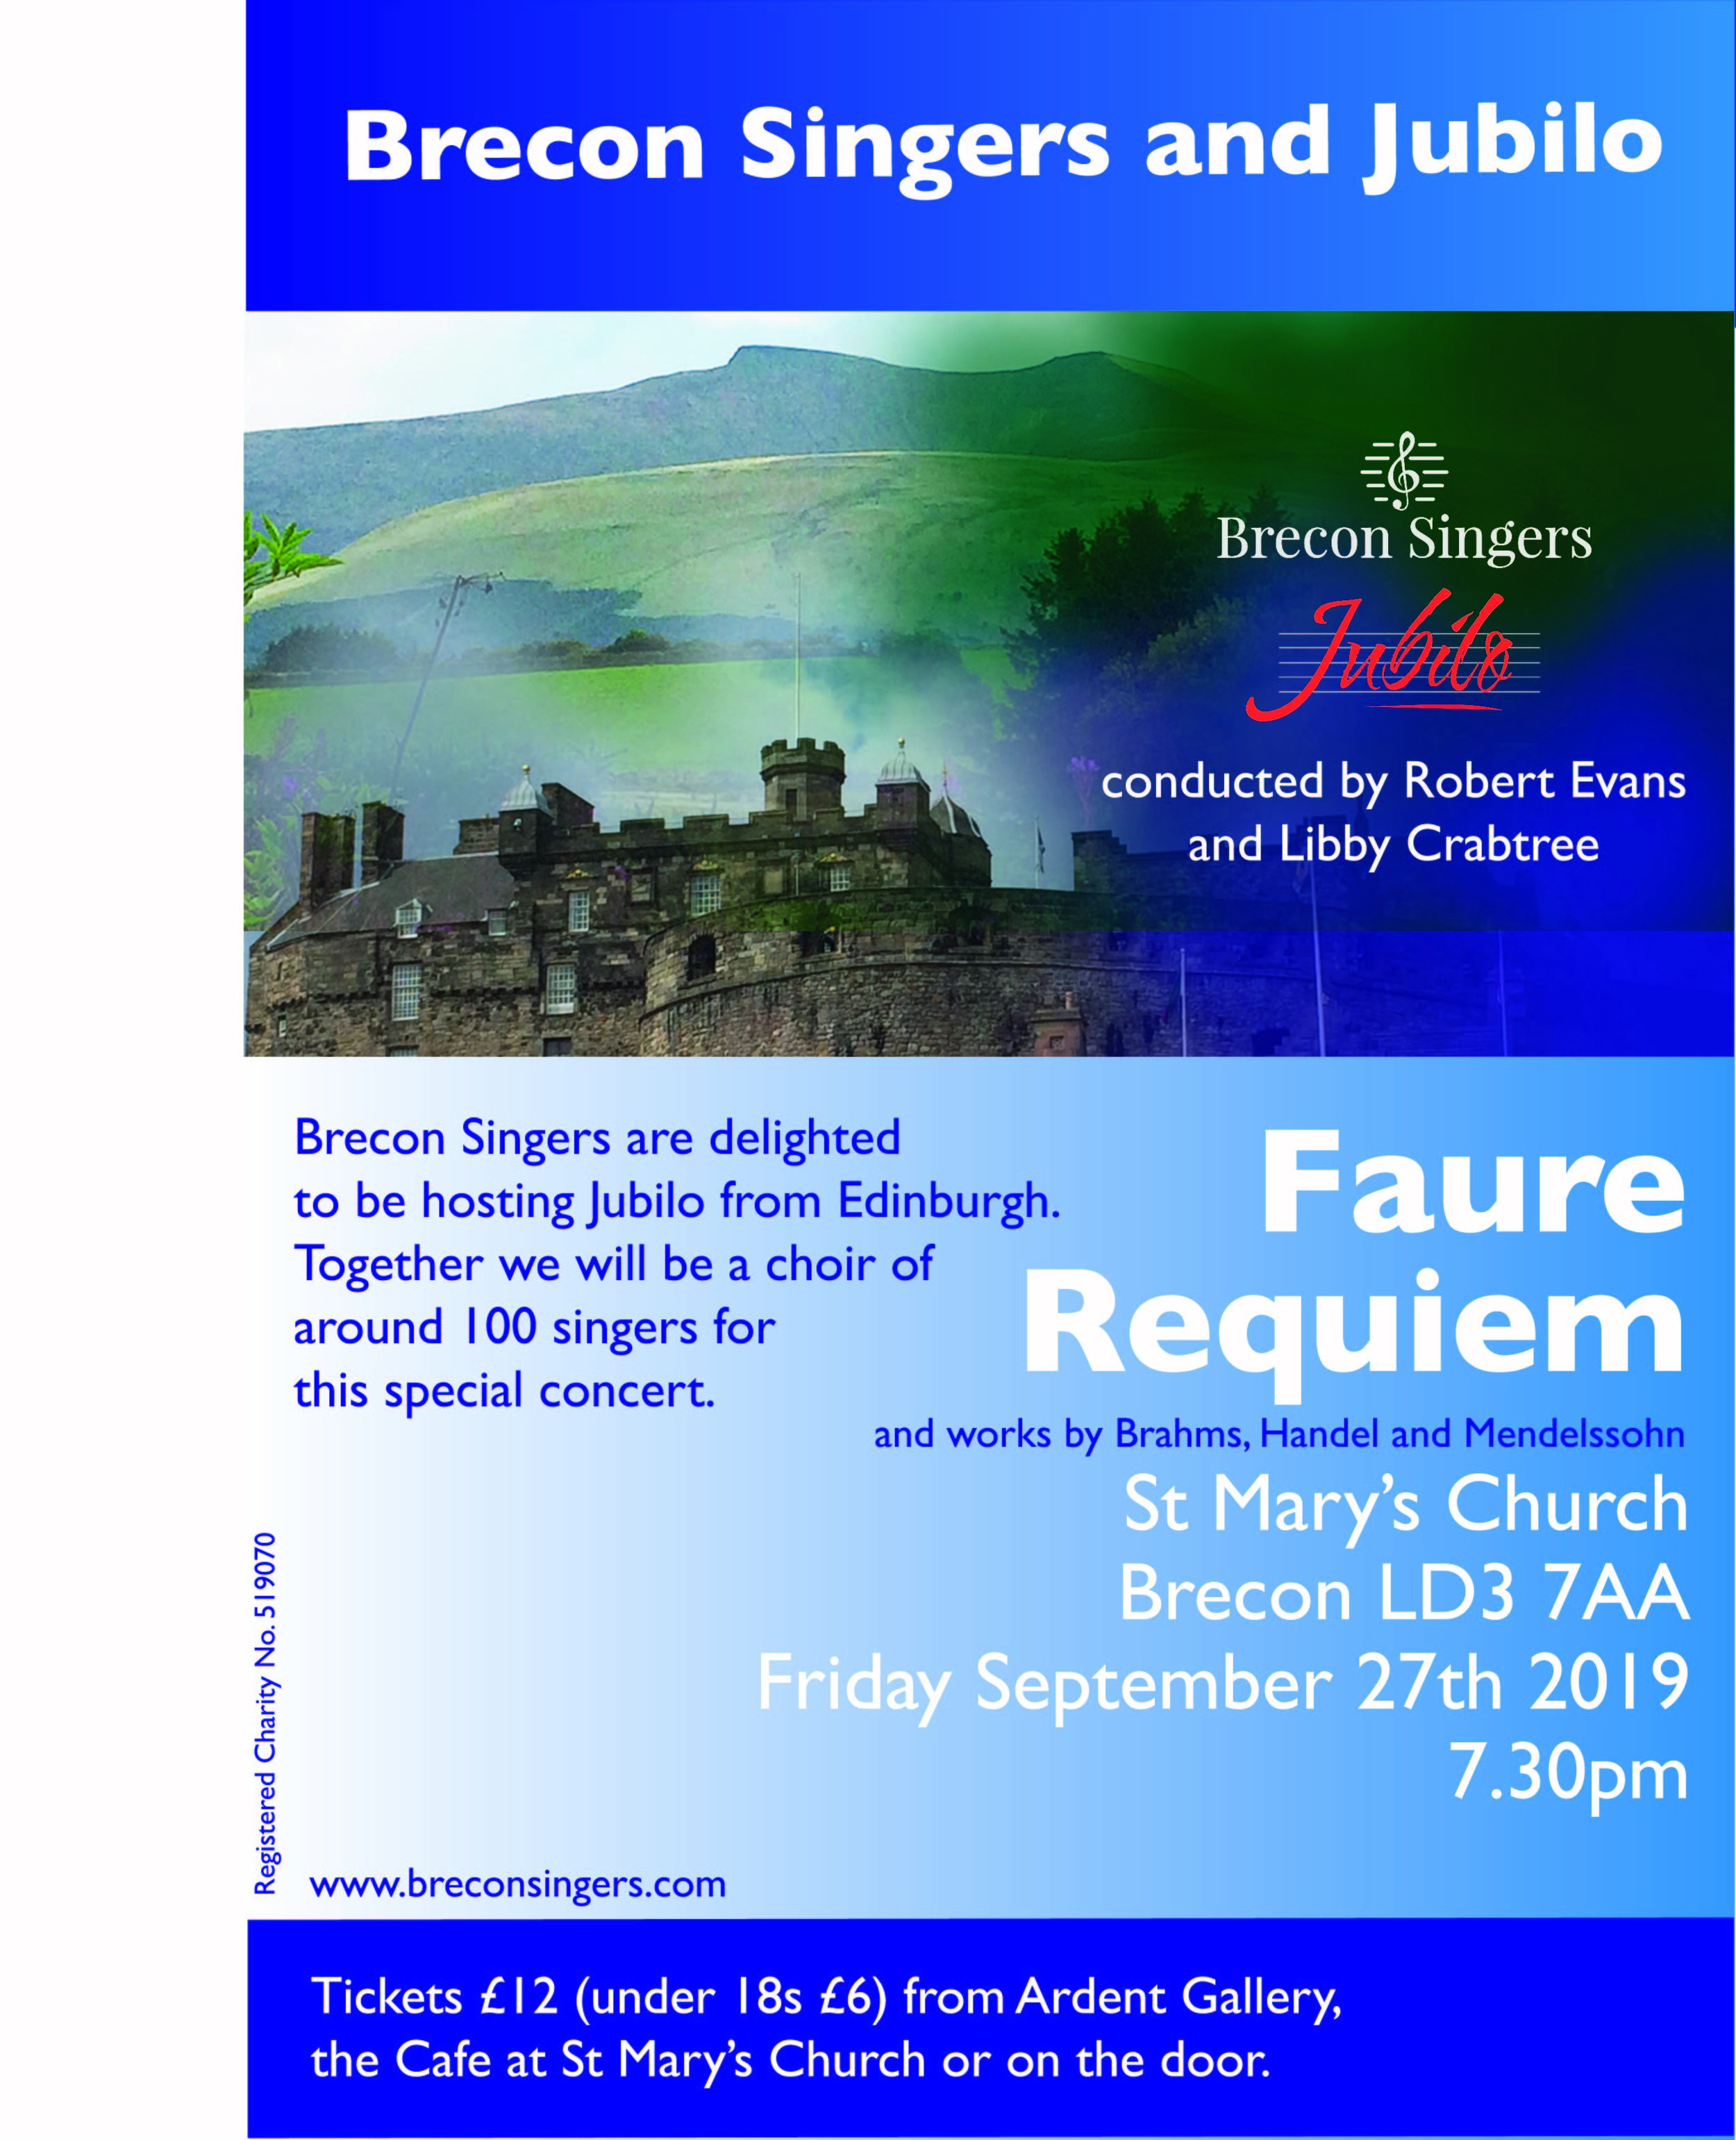 We hope you can join Brecon Singers and Jubilo Choir on Friday 27 September 2019 for this concert and we look forward to seeing you there! -